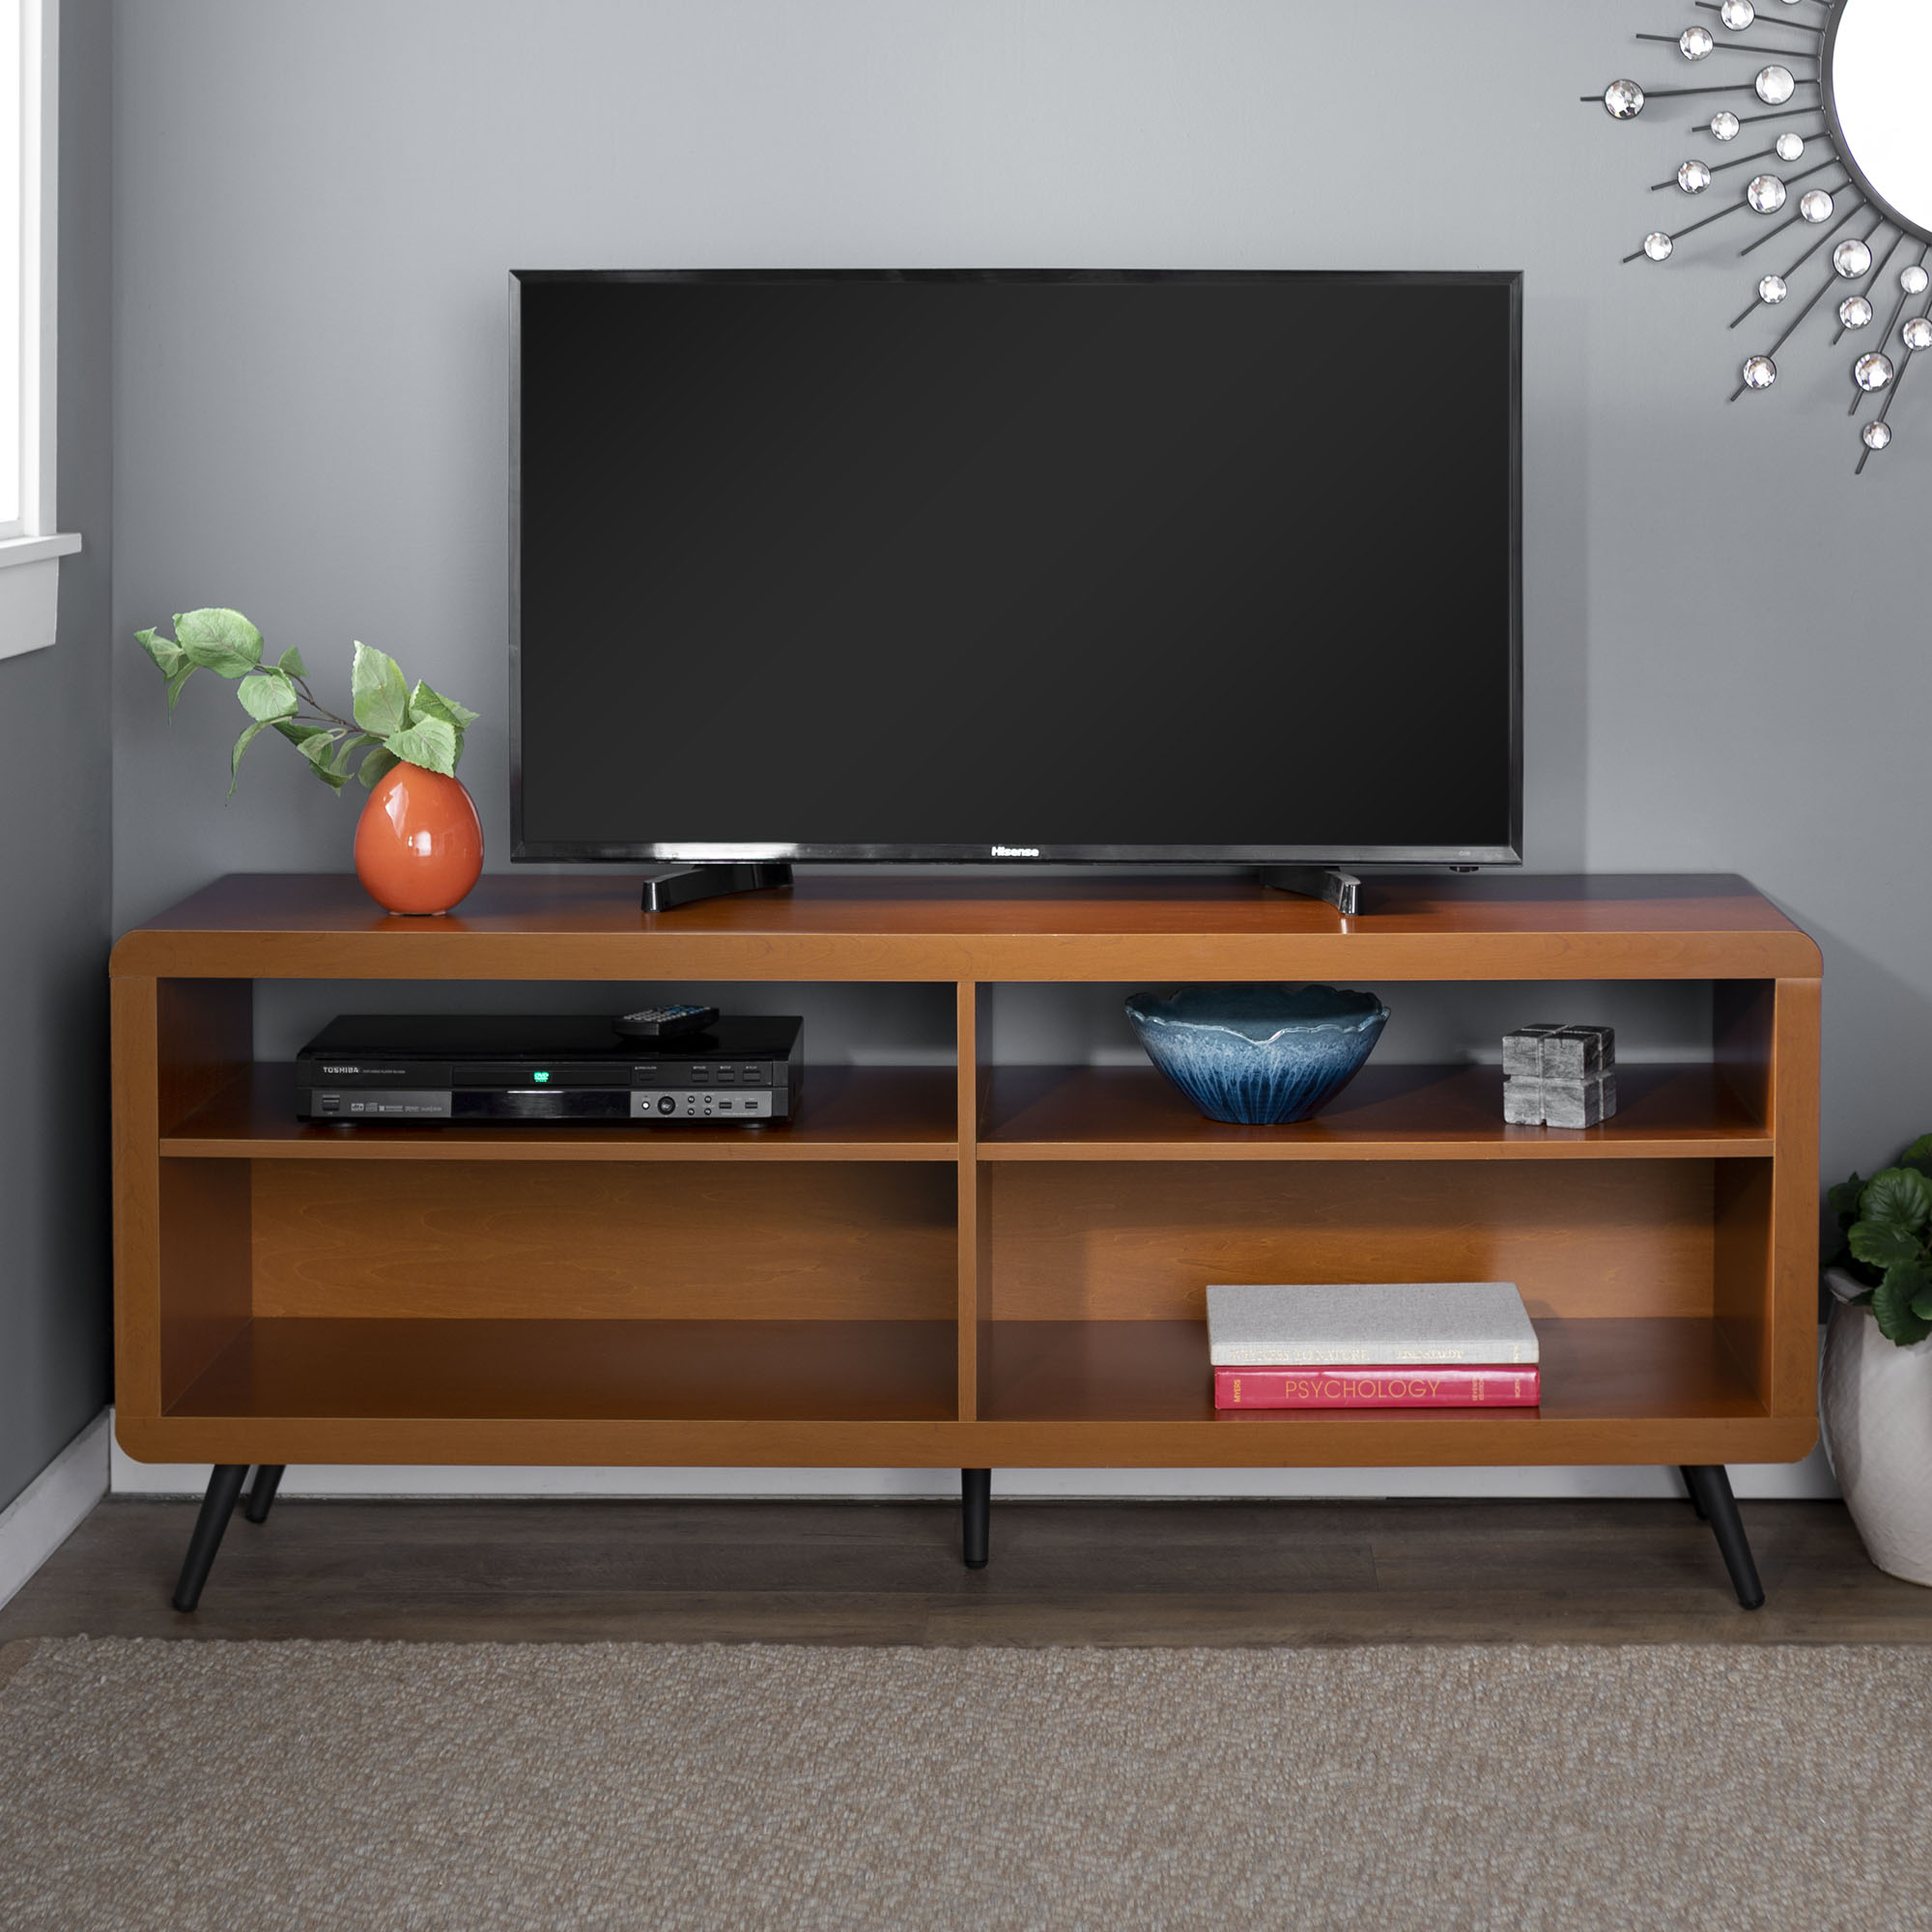 58 mid century modern wood rounded corner tv stand storage media console entertainment center acorn black walmart com